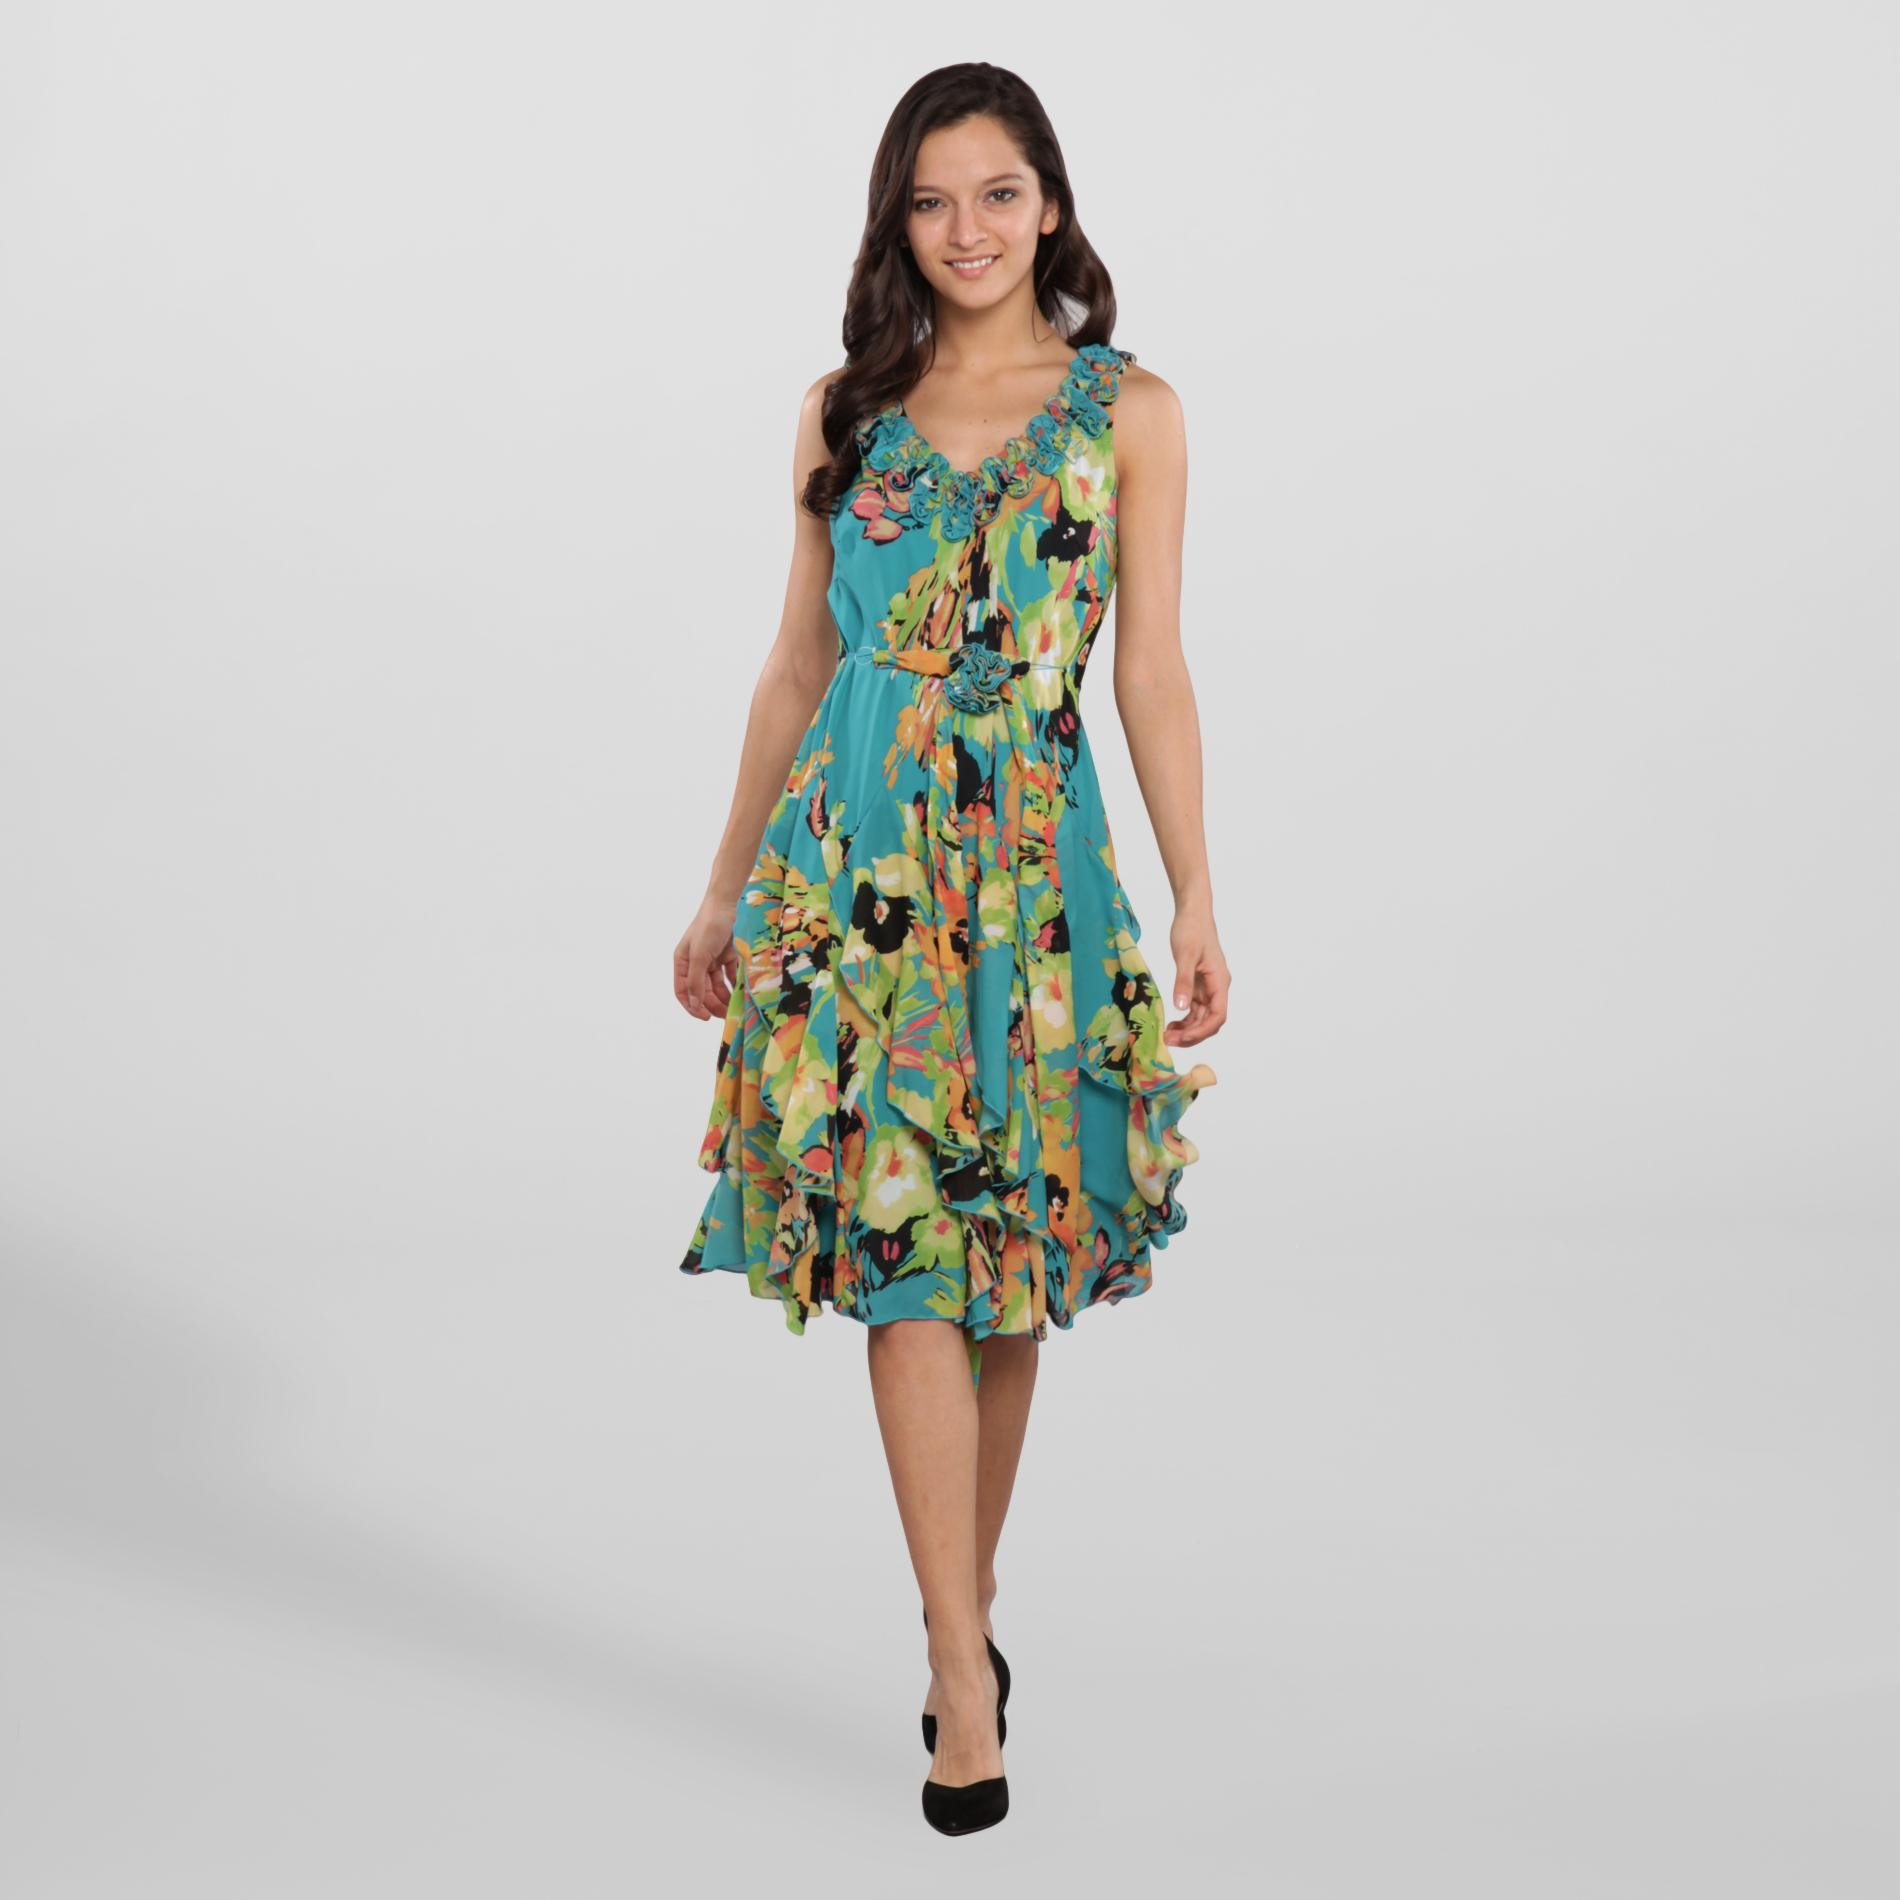 Robbie Bee Women's Party Dress - Floral at Sears.com